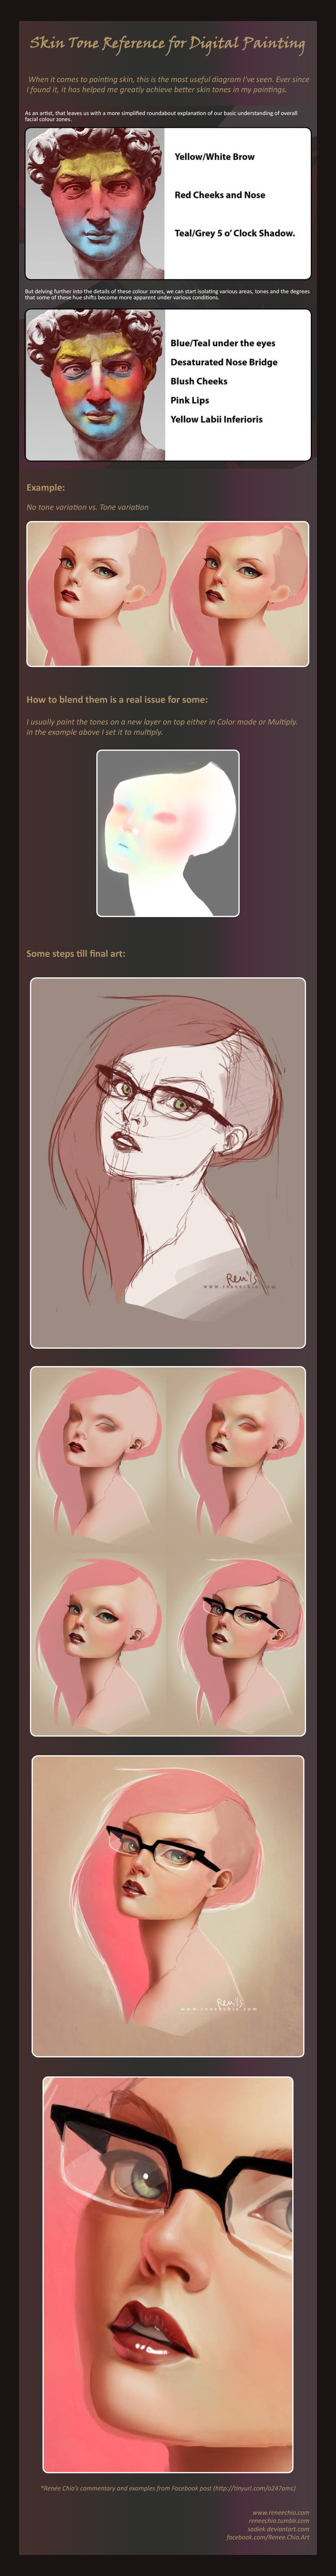 Skin Tone Reference for Digital Painting - Commentary by Renée Chio